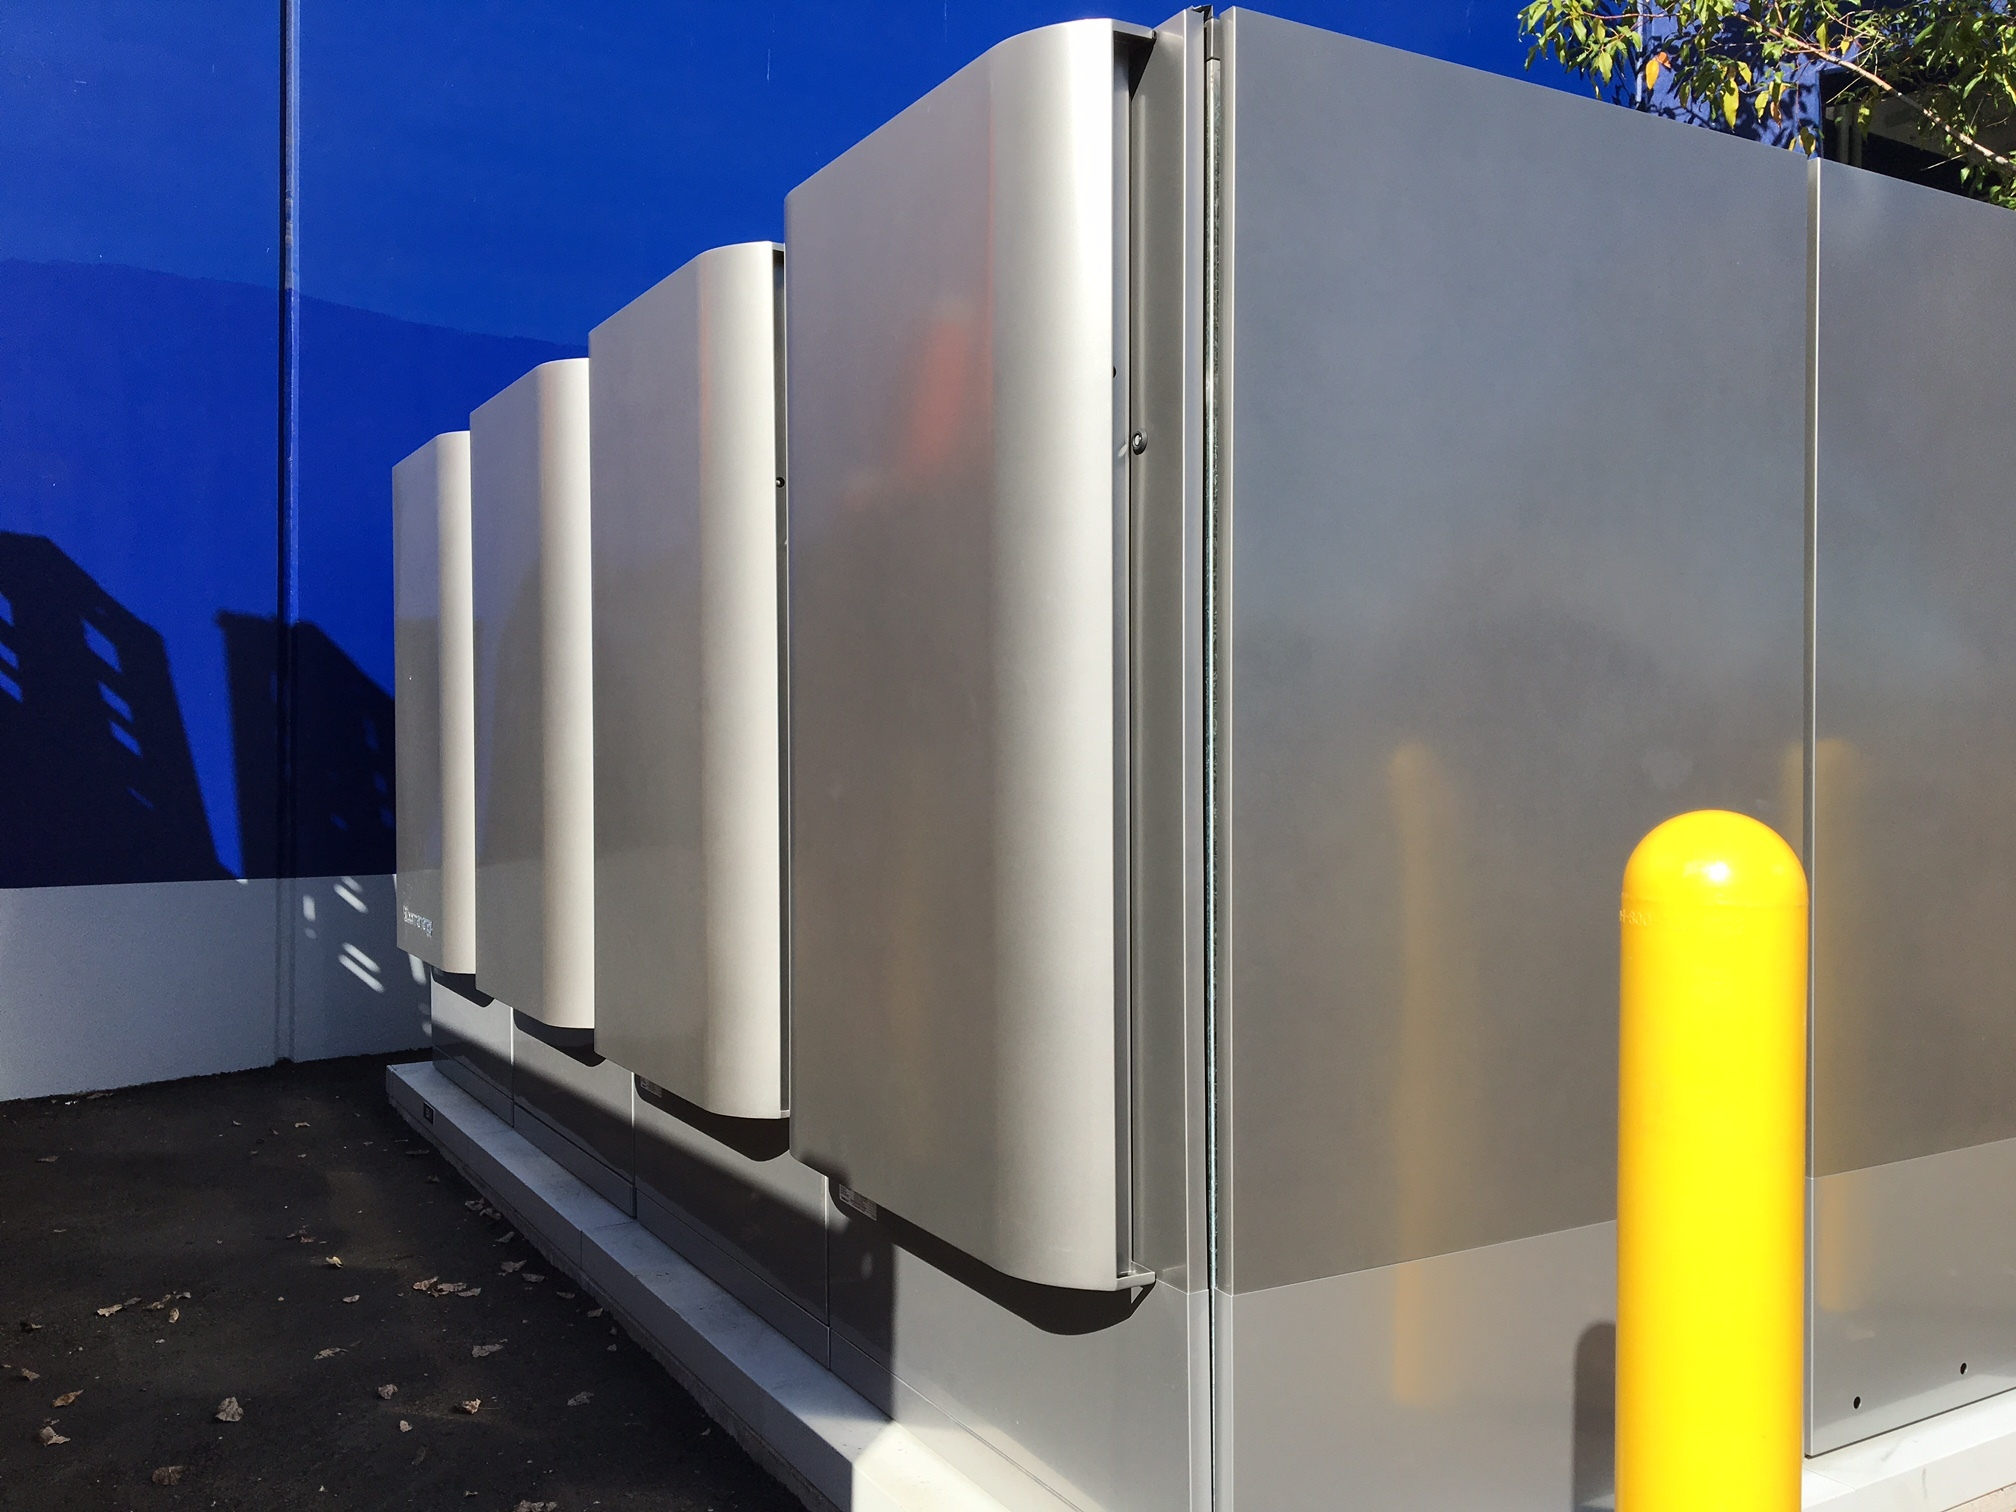 Ikea San Diego Hours Growing Its Renewable Portfolio Ikea Plugs In Fuel Cell System To